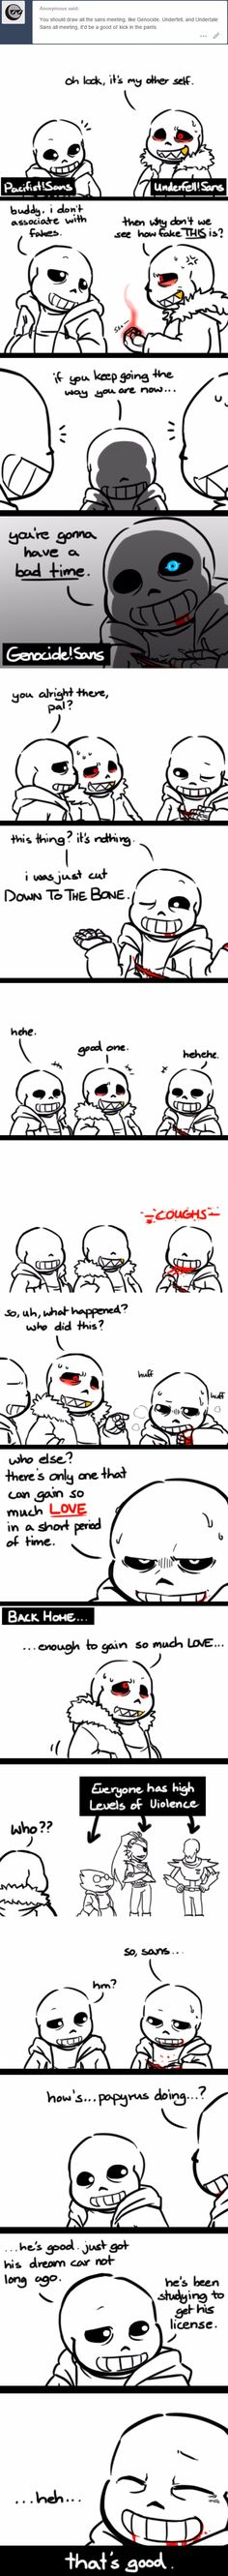 Sans - Pacifist, Underfell, and Genocide AU - comic